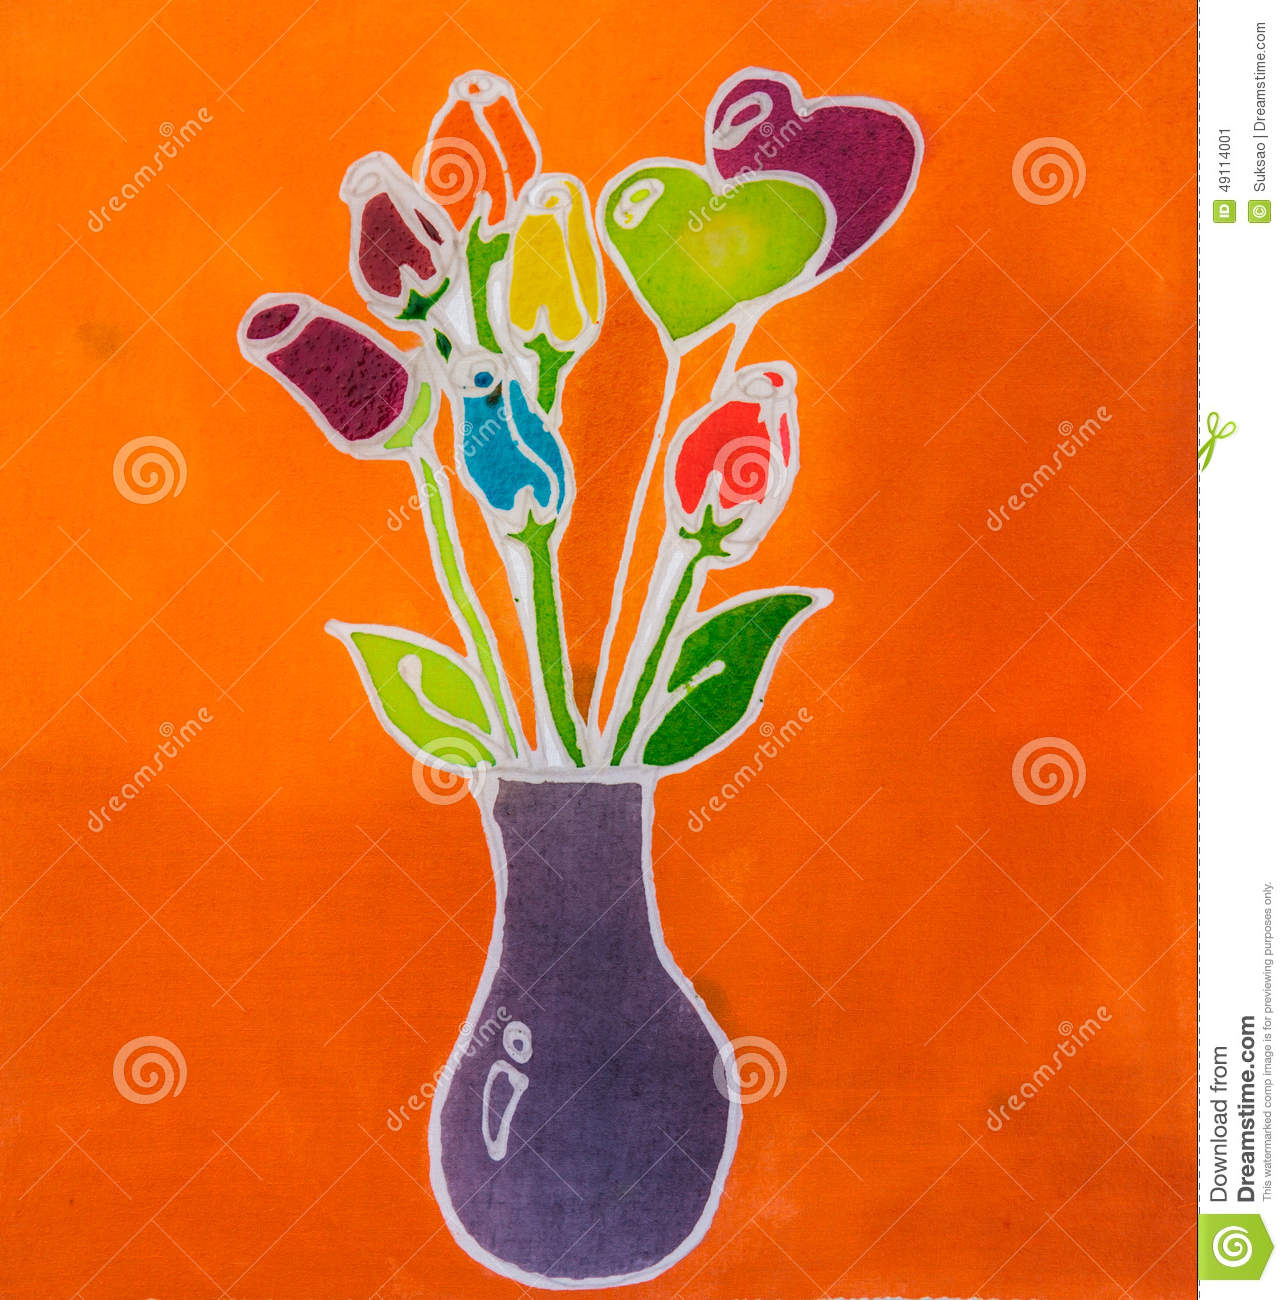 Painting flower vase stock image image of flower cute 49114001 painting flower vase cute paintbrush floridaeventfo Images